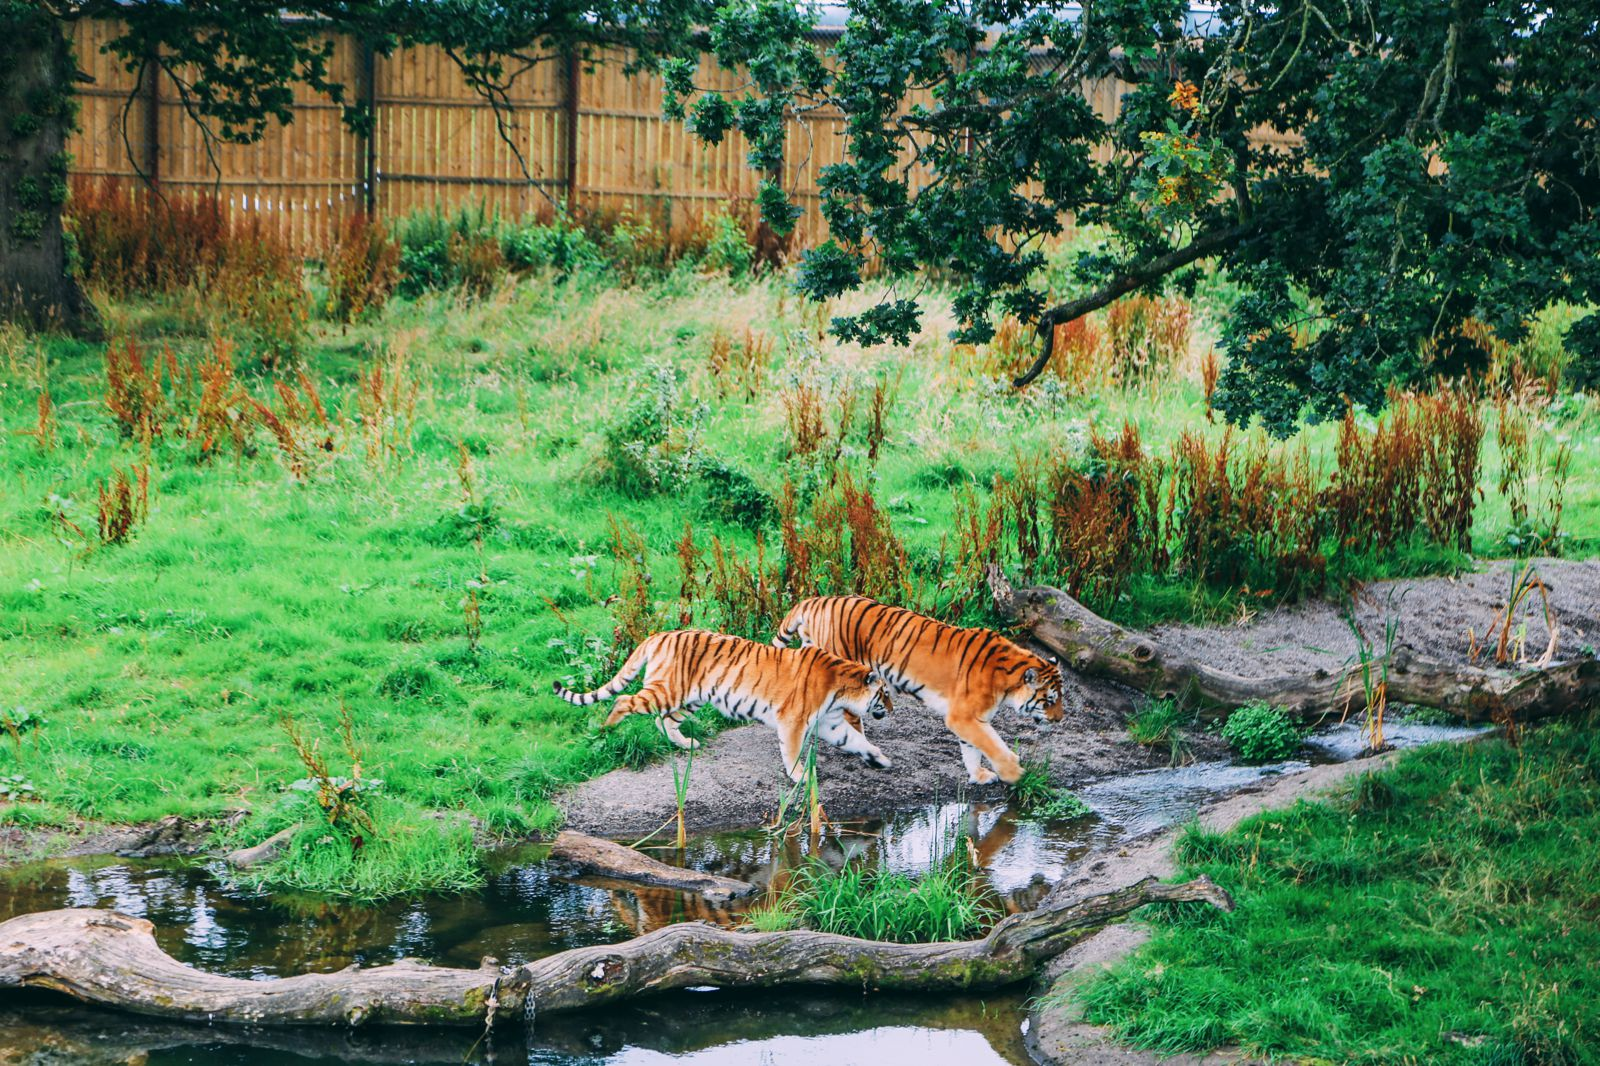 Safari In Scotland - The Photo Diary at Blair Drummond Safari and Adventure Park (22)